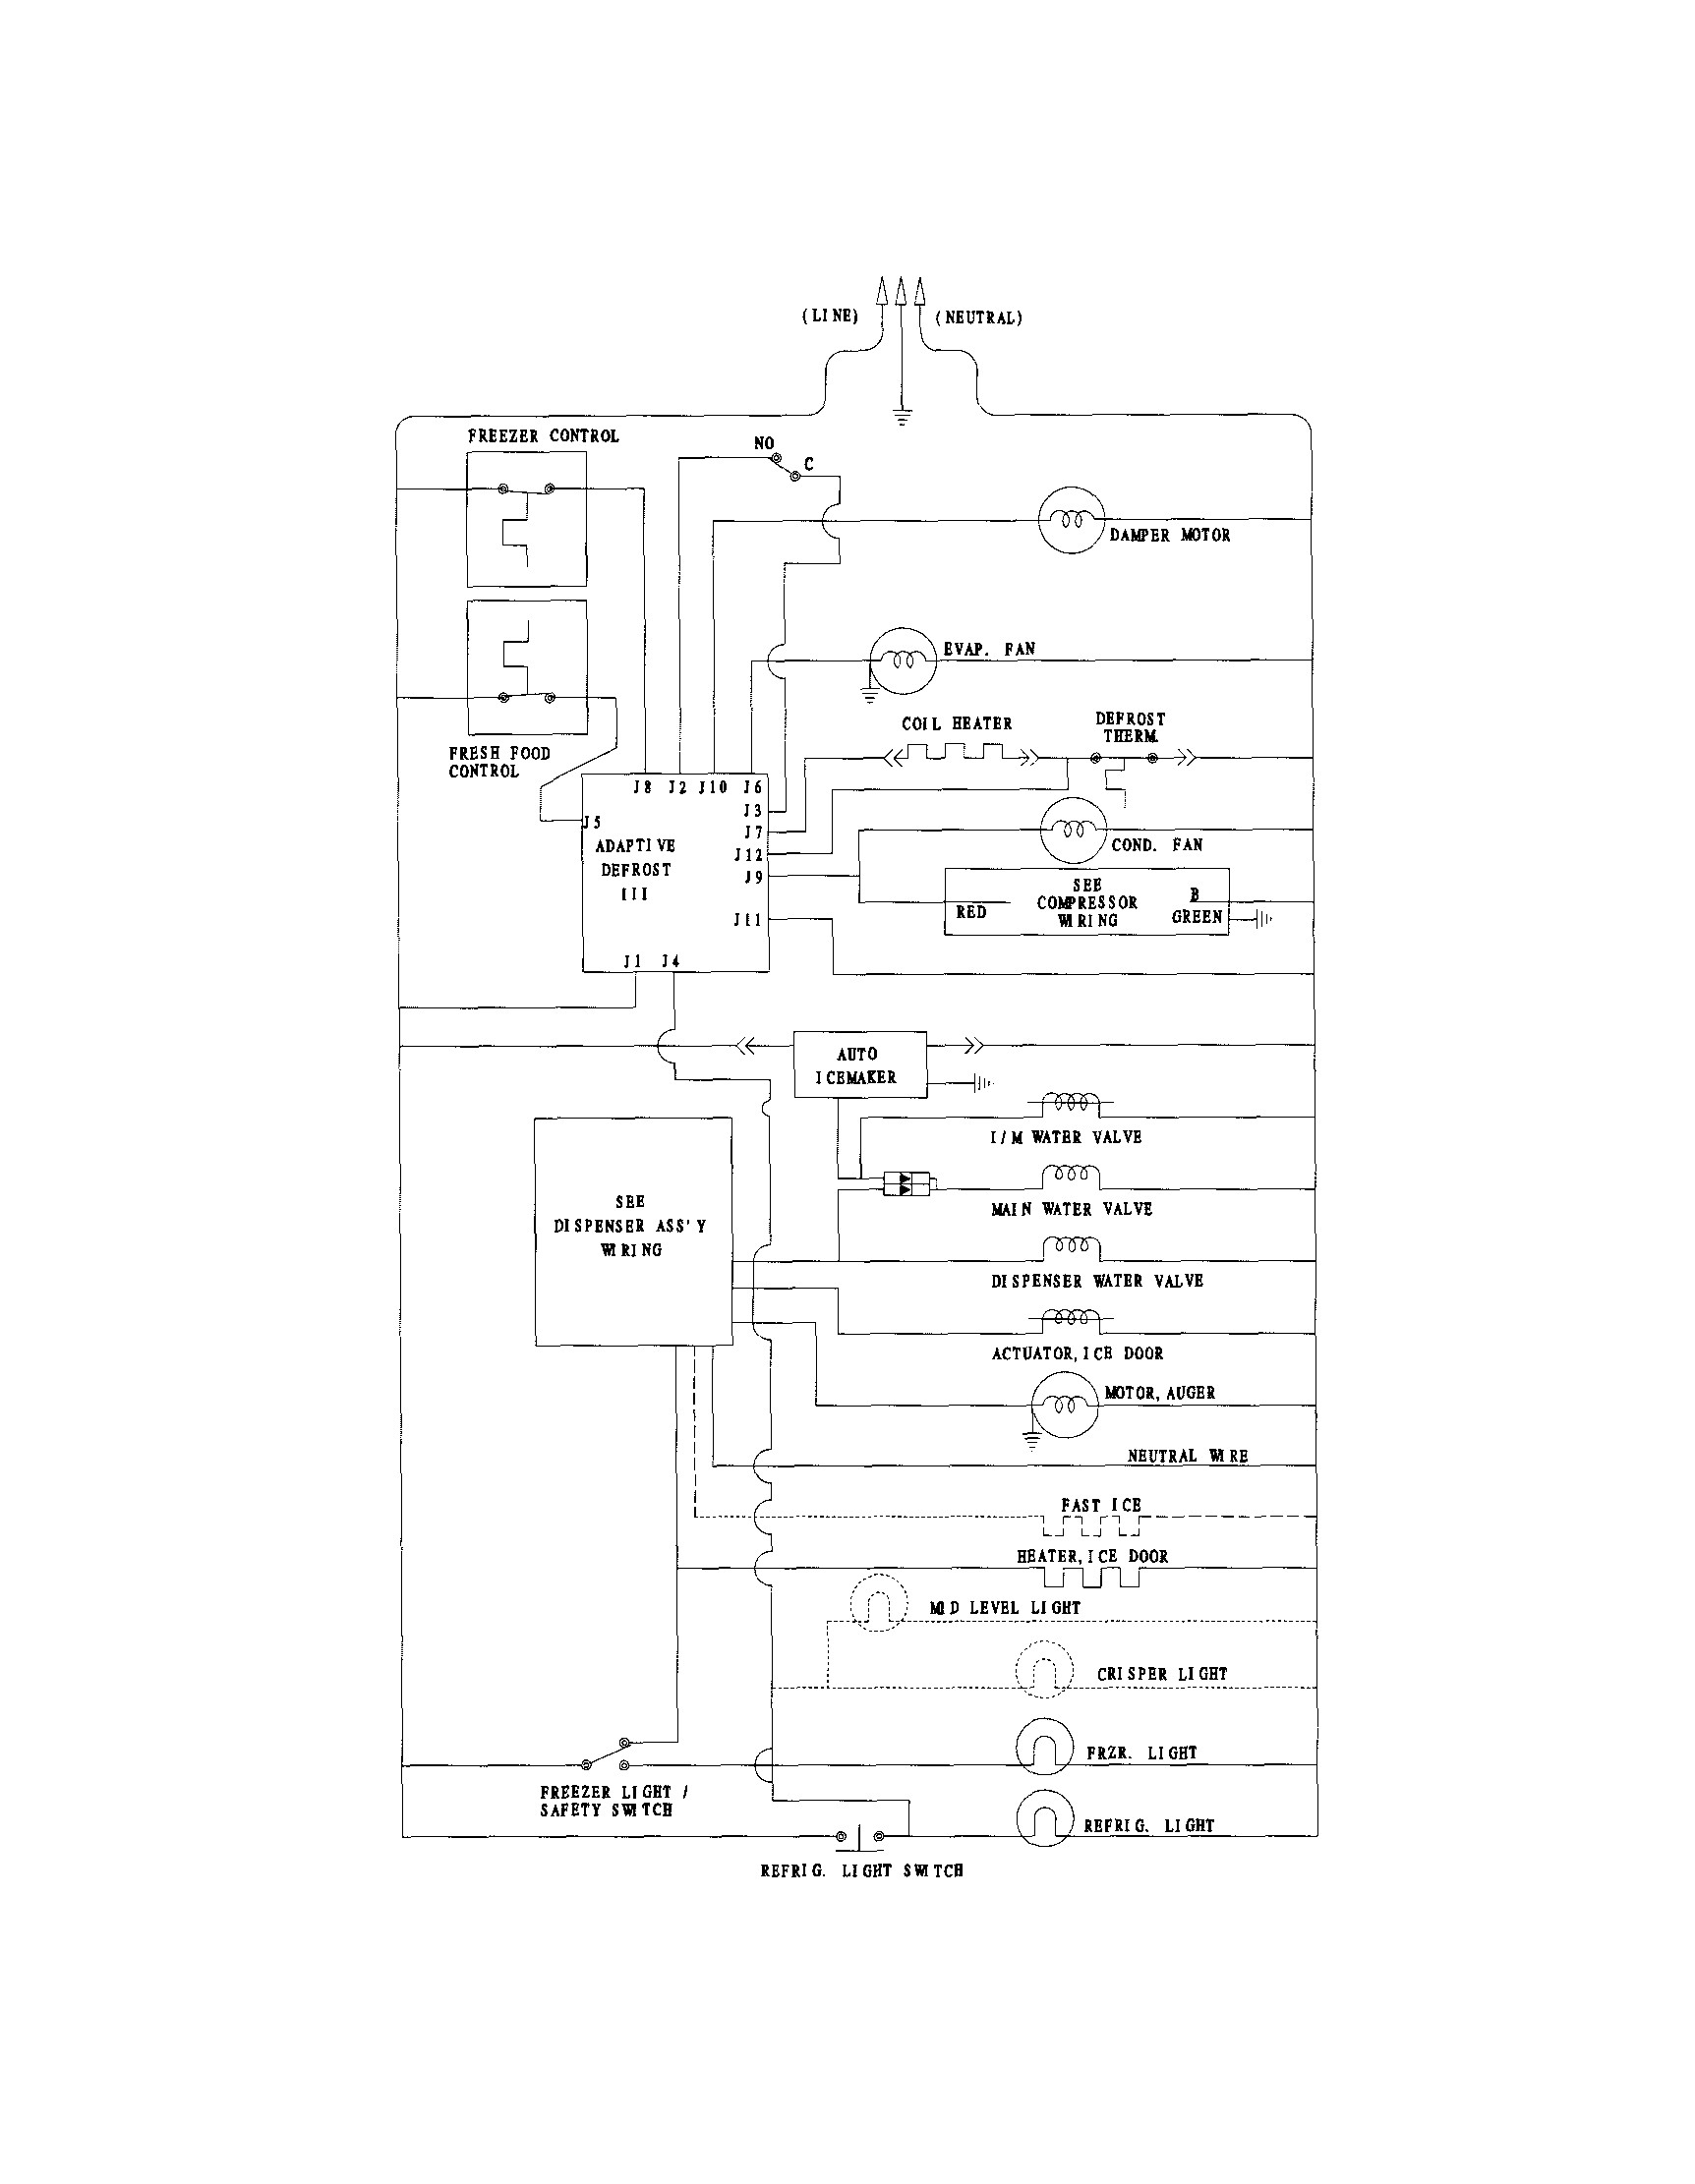 whirlpool et8chmxkb0 ice maker wiring diagram ice maker wiring diagram frigidaire ice maker wiring diagram | free wiring diagram #11